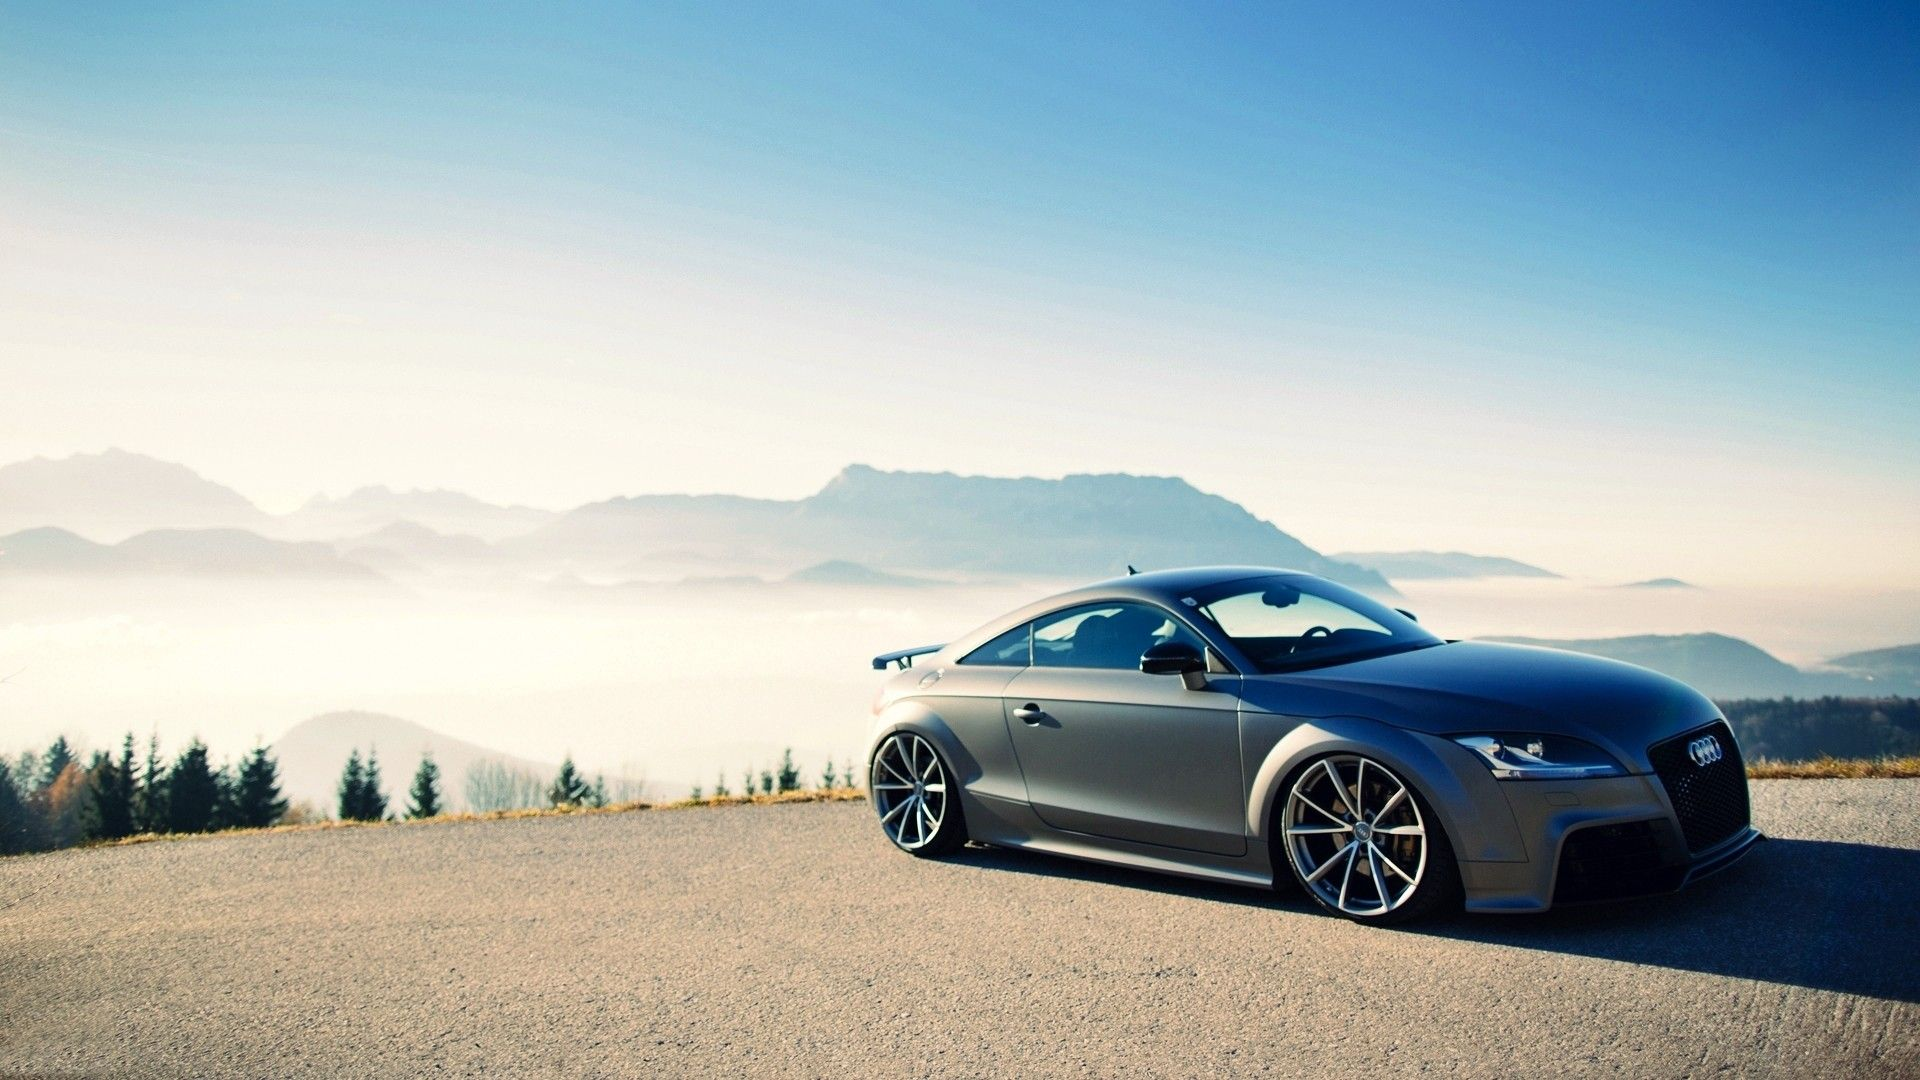 Audi Tt Wallpapers And High Resolution Pictures